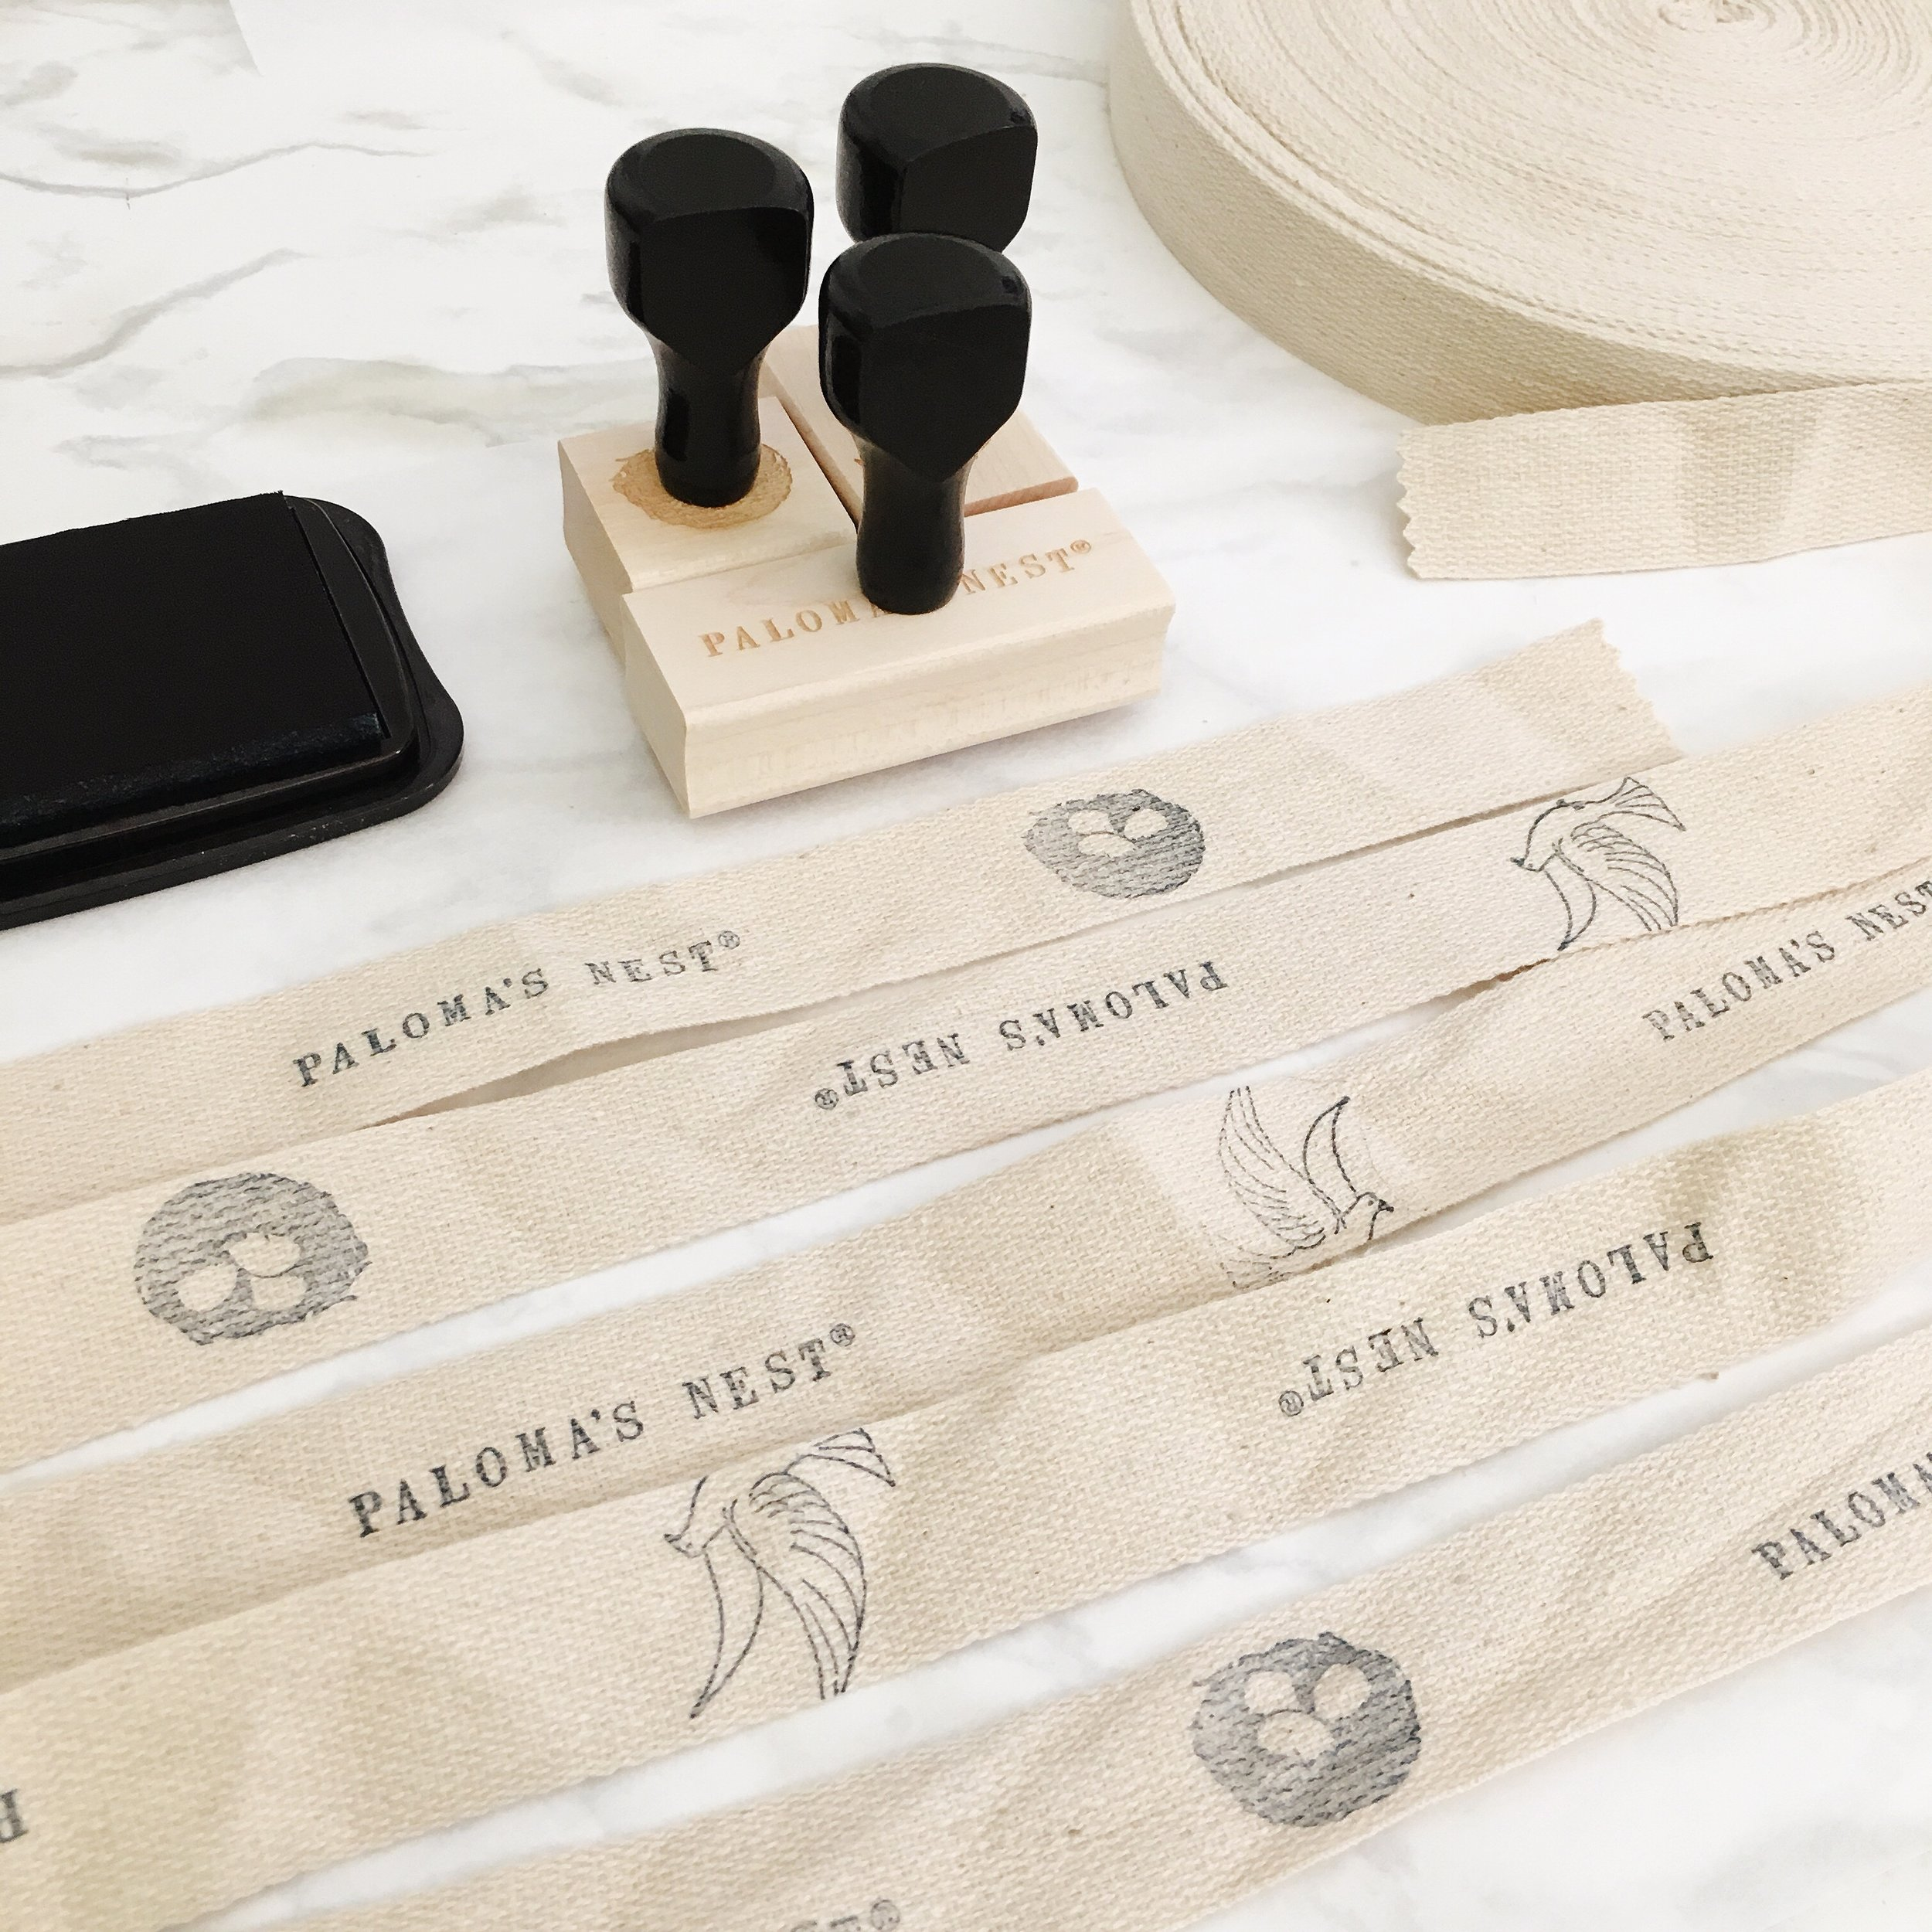 Creatiate Rubber Stamps Pretty Packaging Project 8.jpg